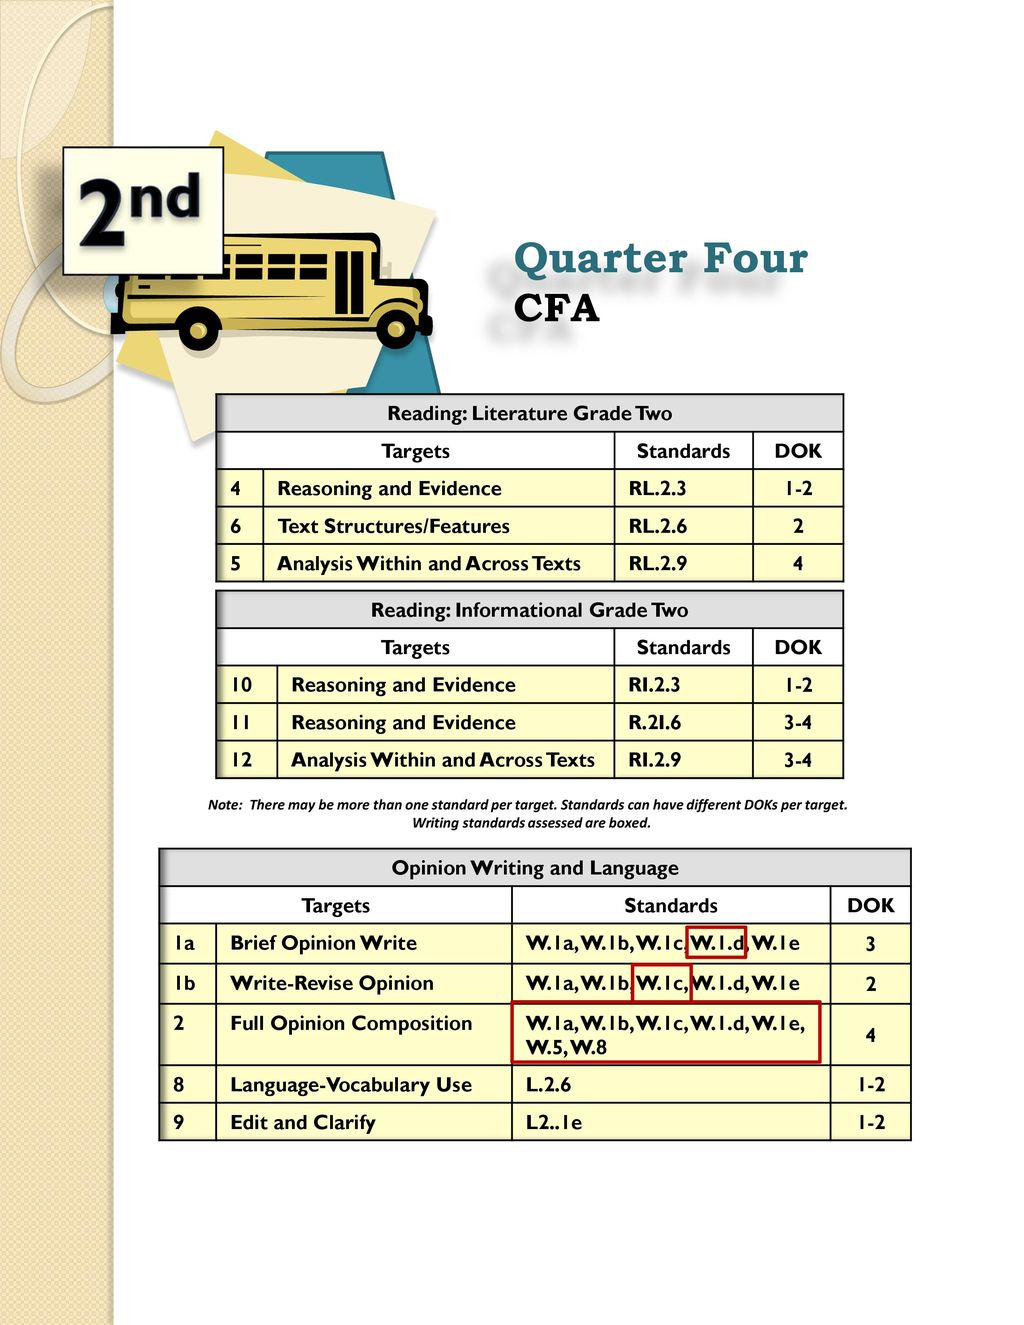 2nd Quarter Four Cfa Reading Literature Grade Two Targets Standards